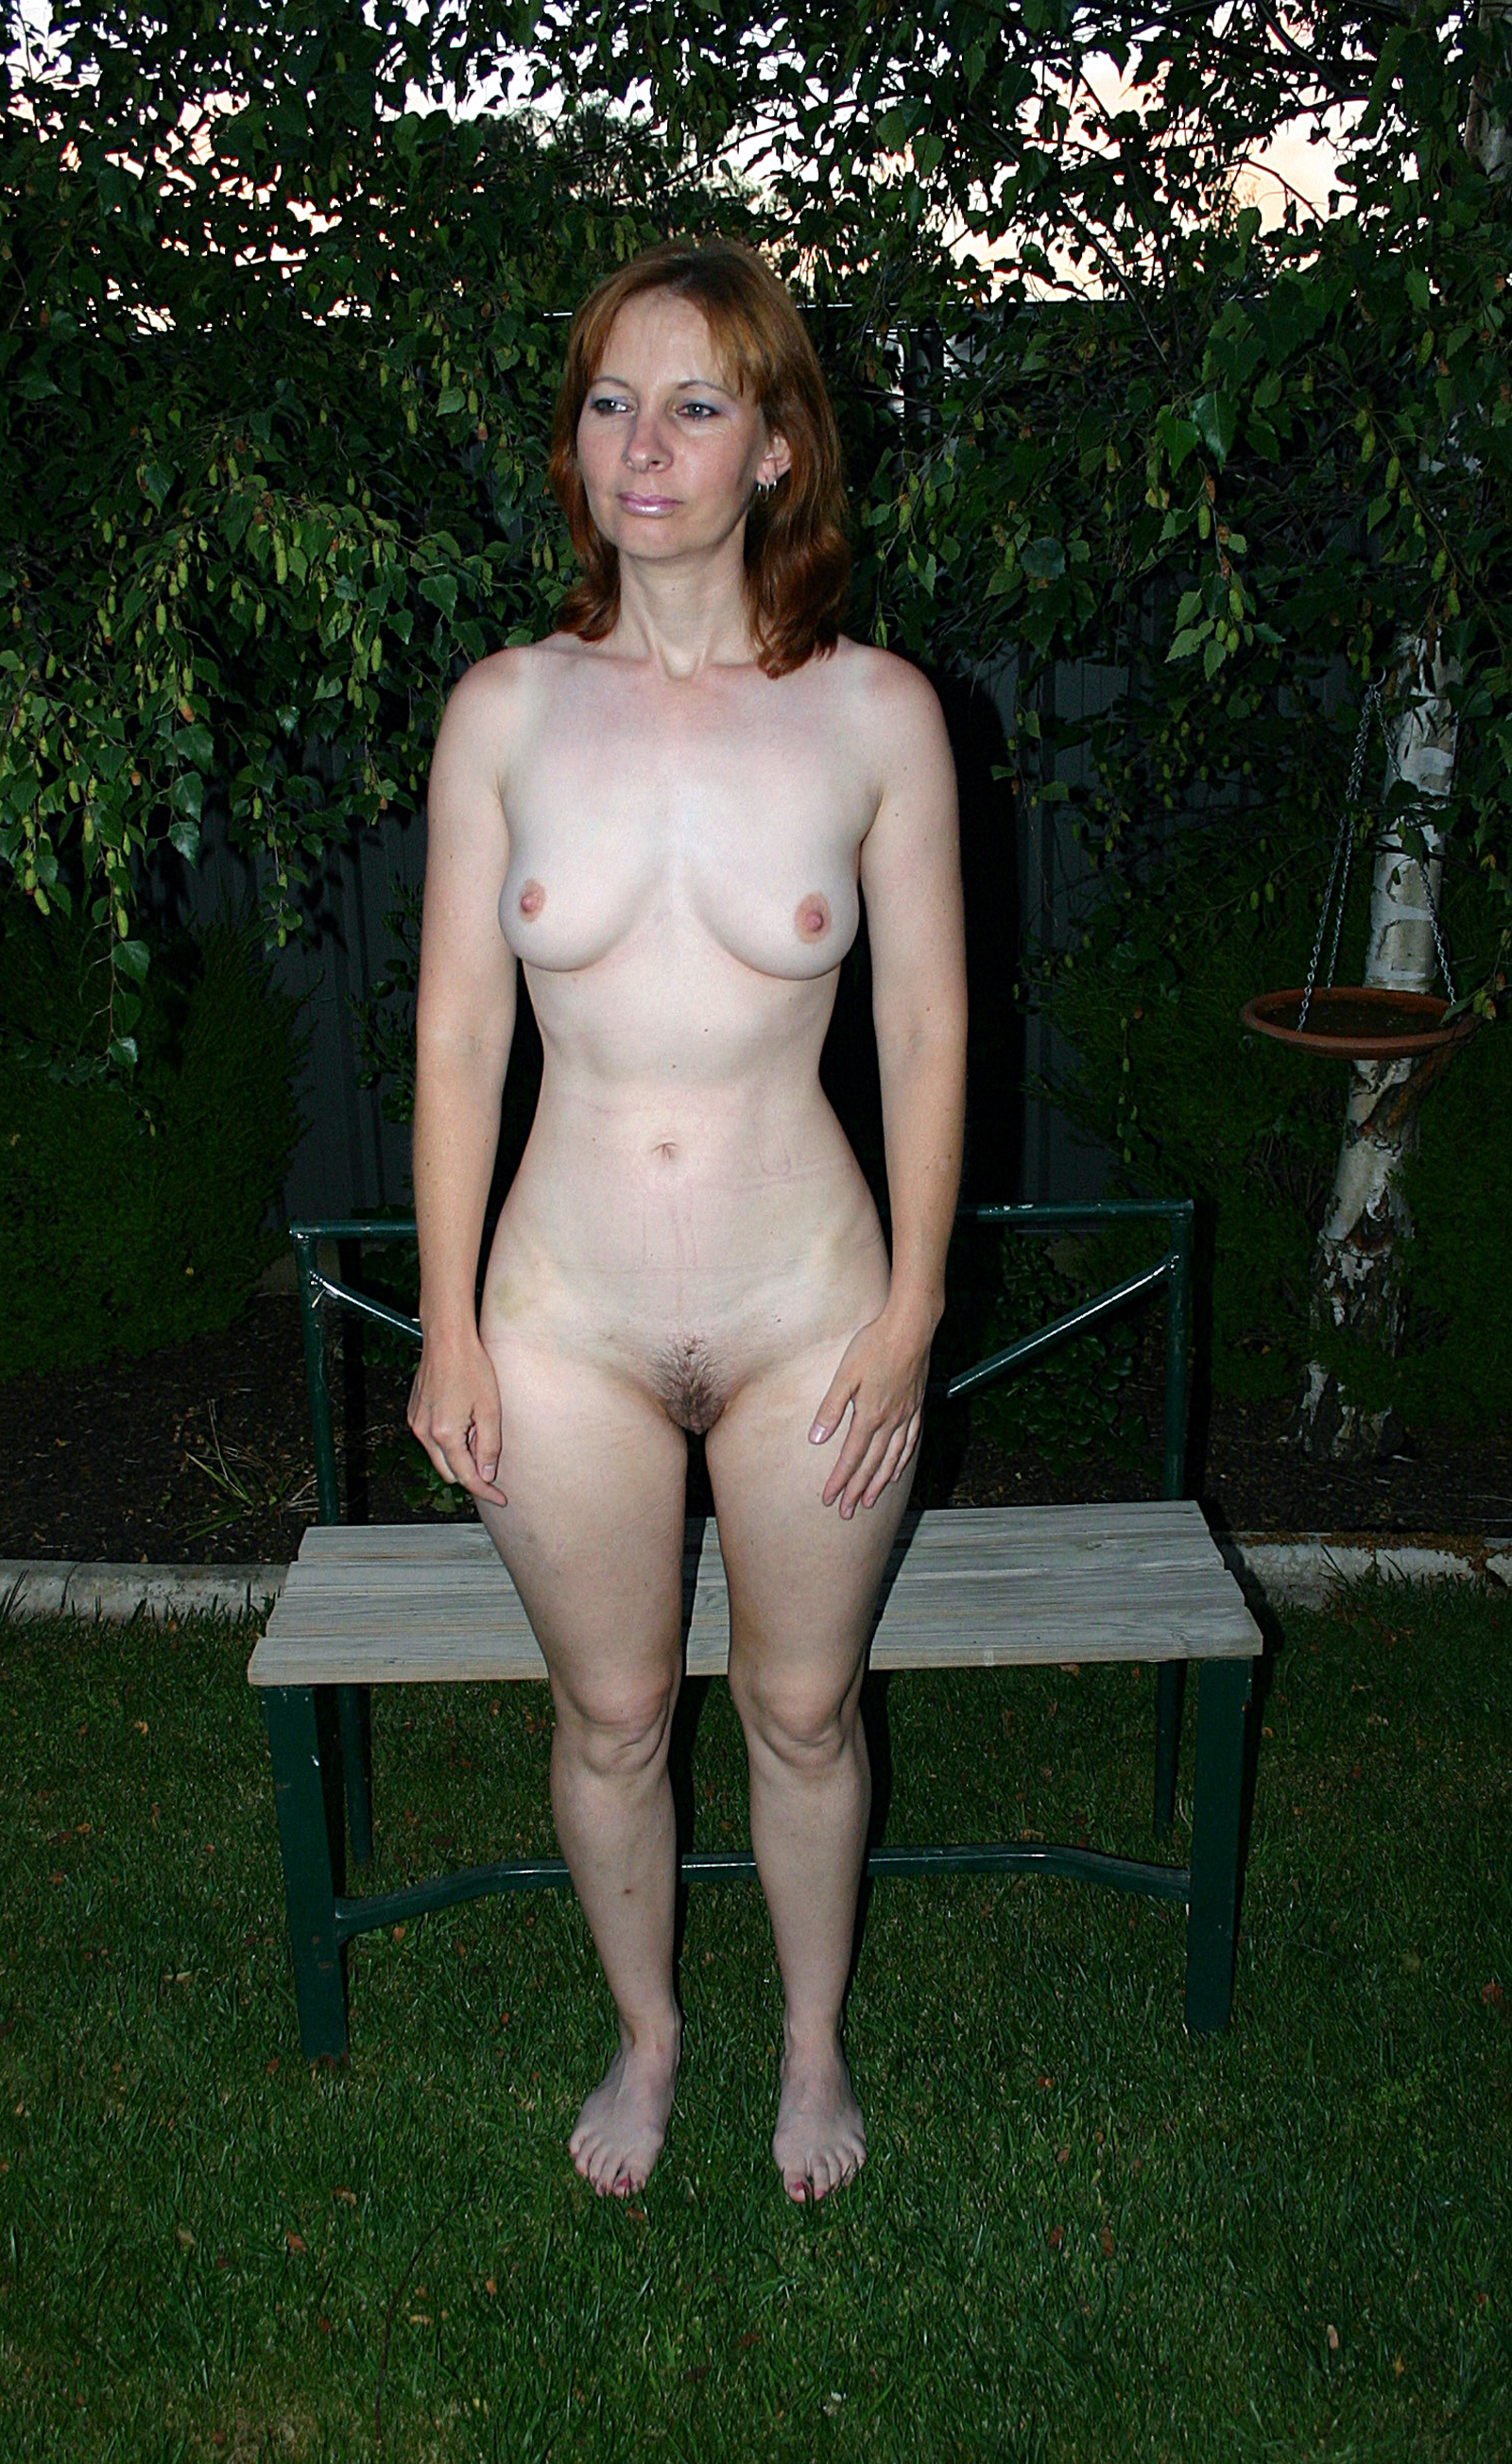 Full frontal nudity wives, egypy young sex photo